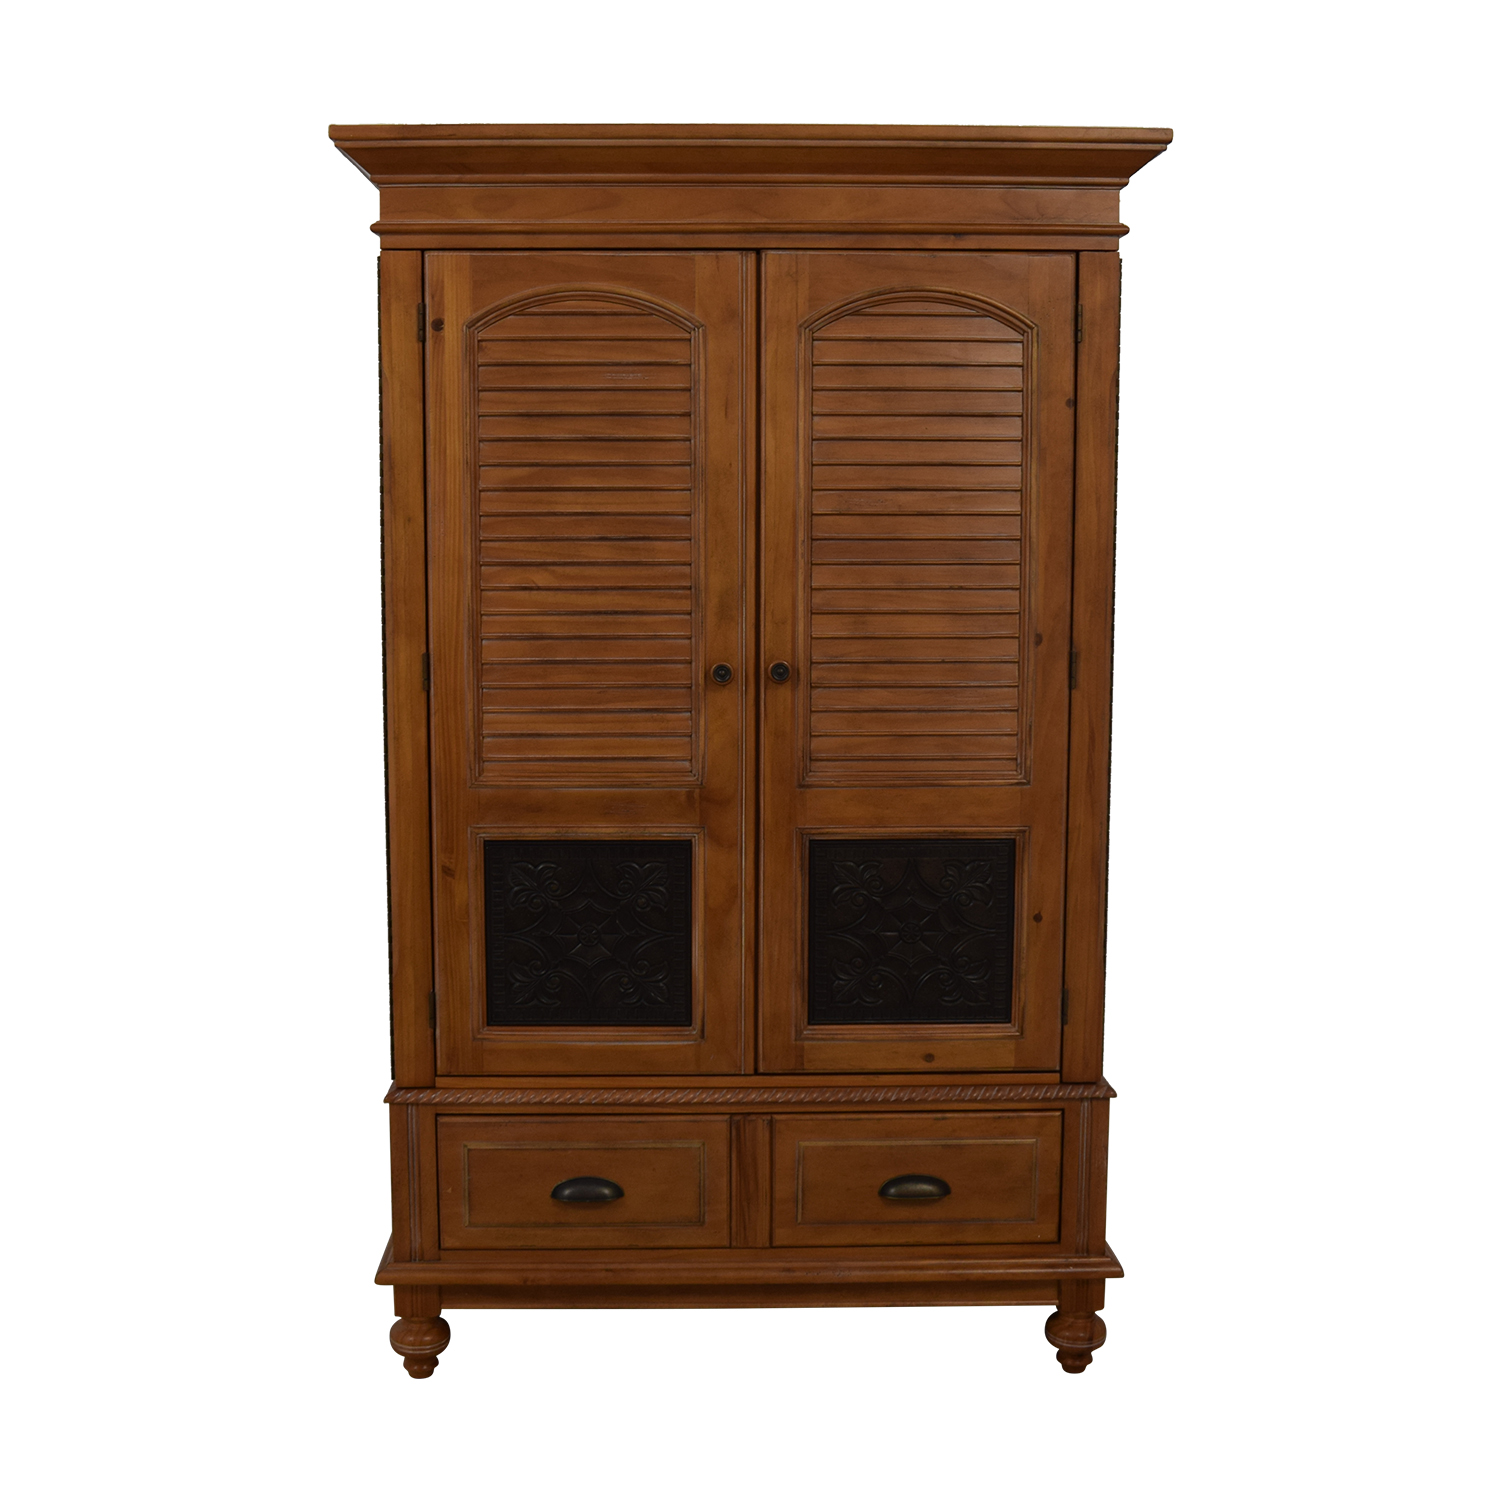 A.R.T. Furniture A.R.T. Furniture Four-Drawer Wood Wardrobe Armoire Wardrobes & Armoires